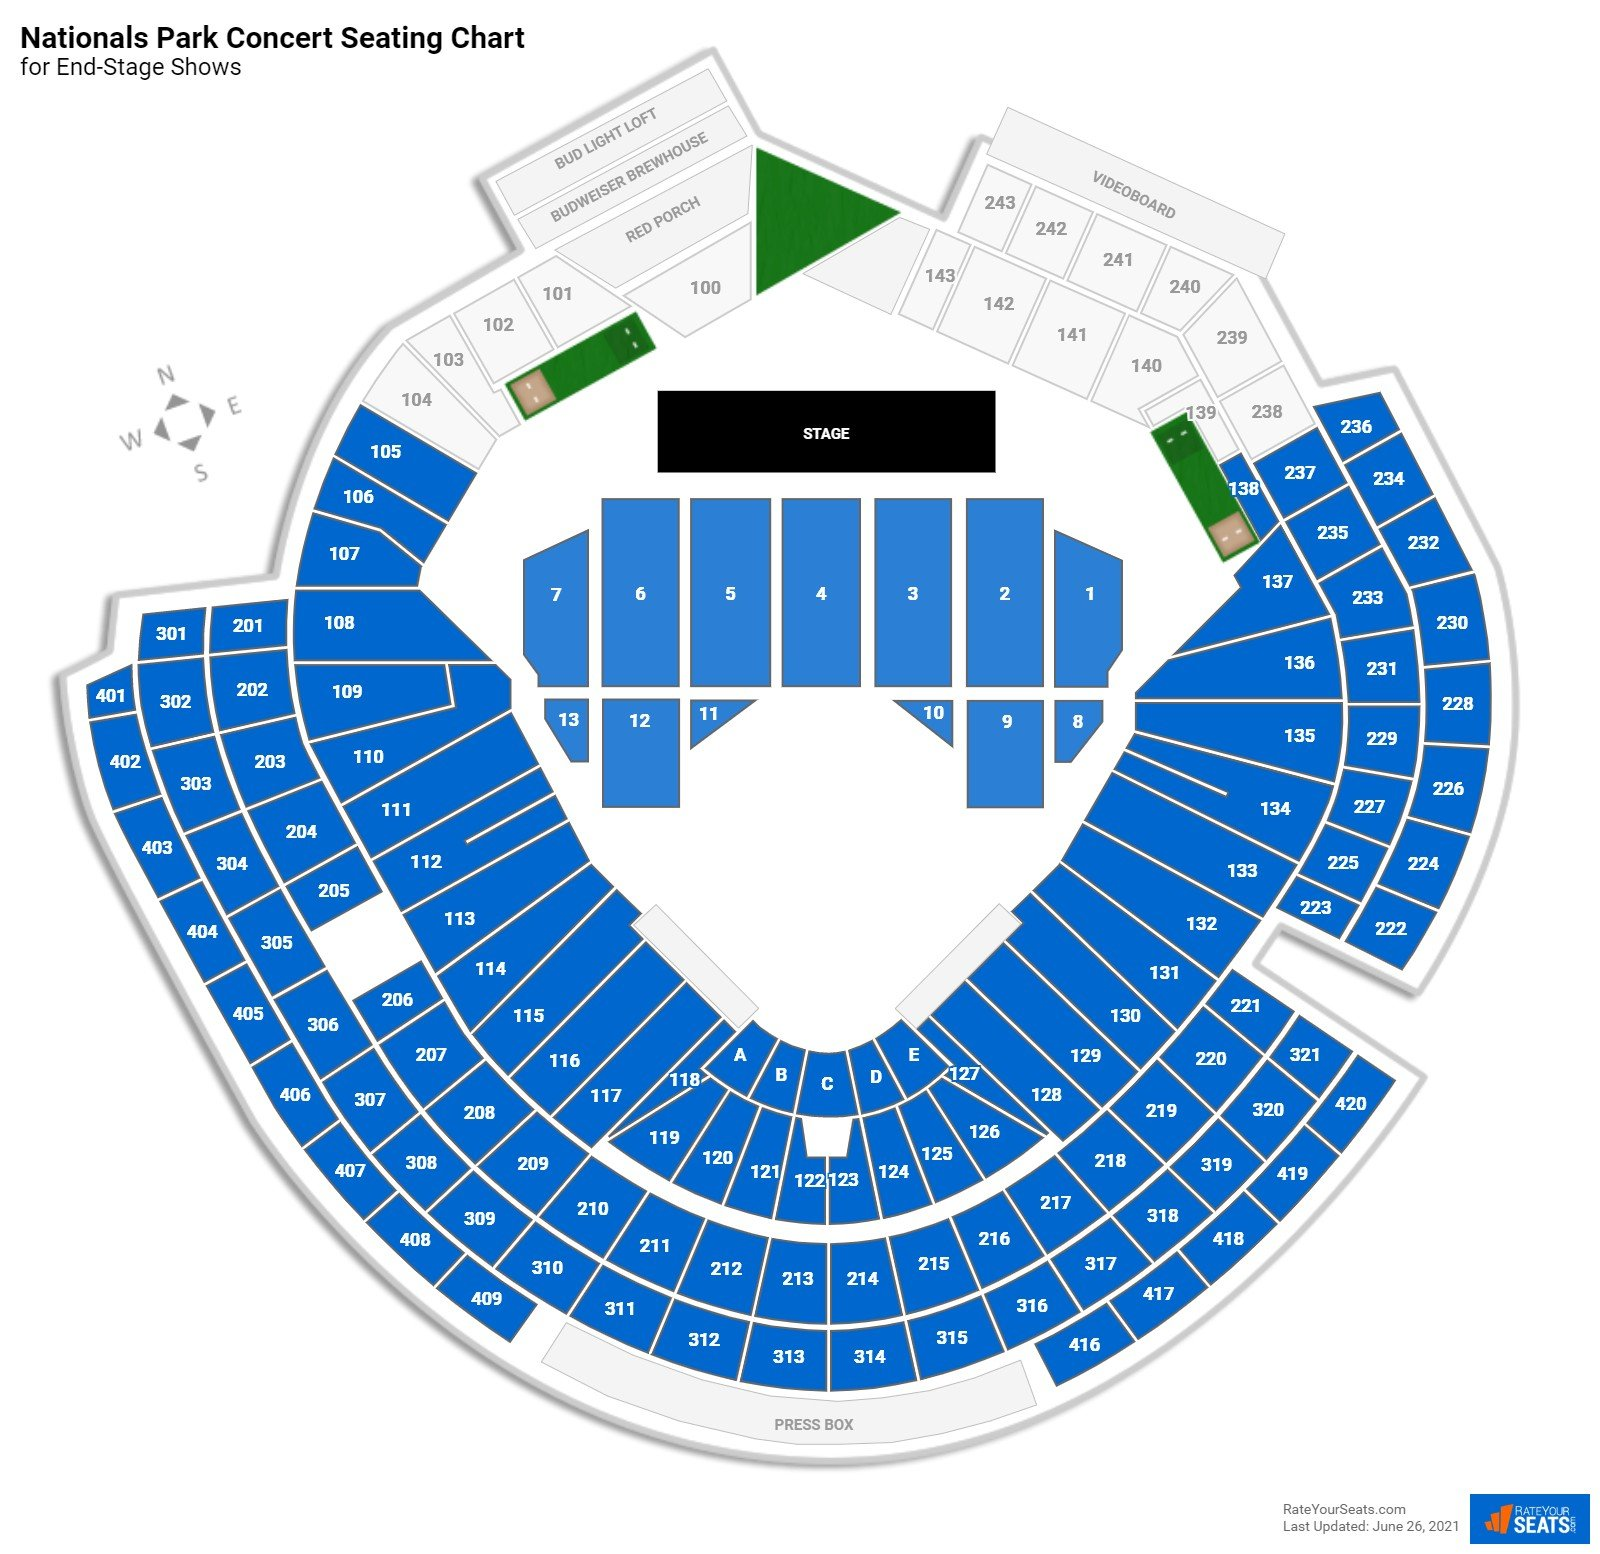 Nationals Park Seating Chart for Concerts